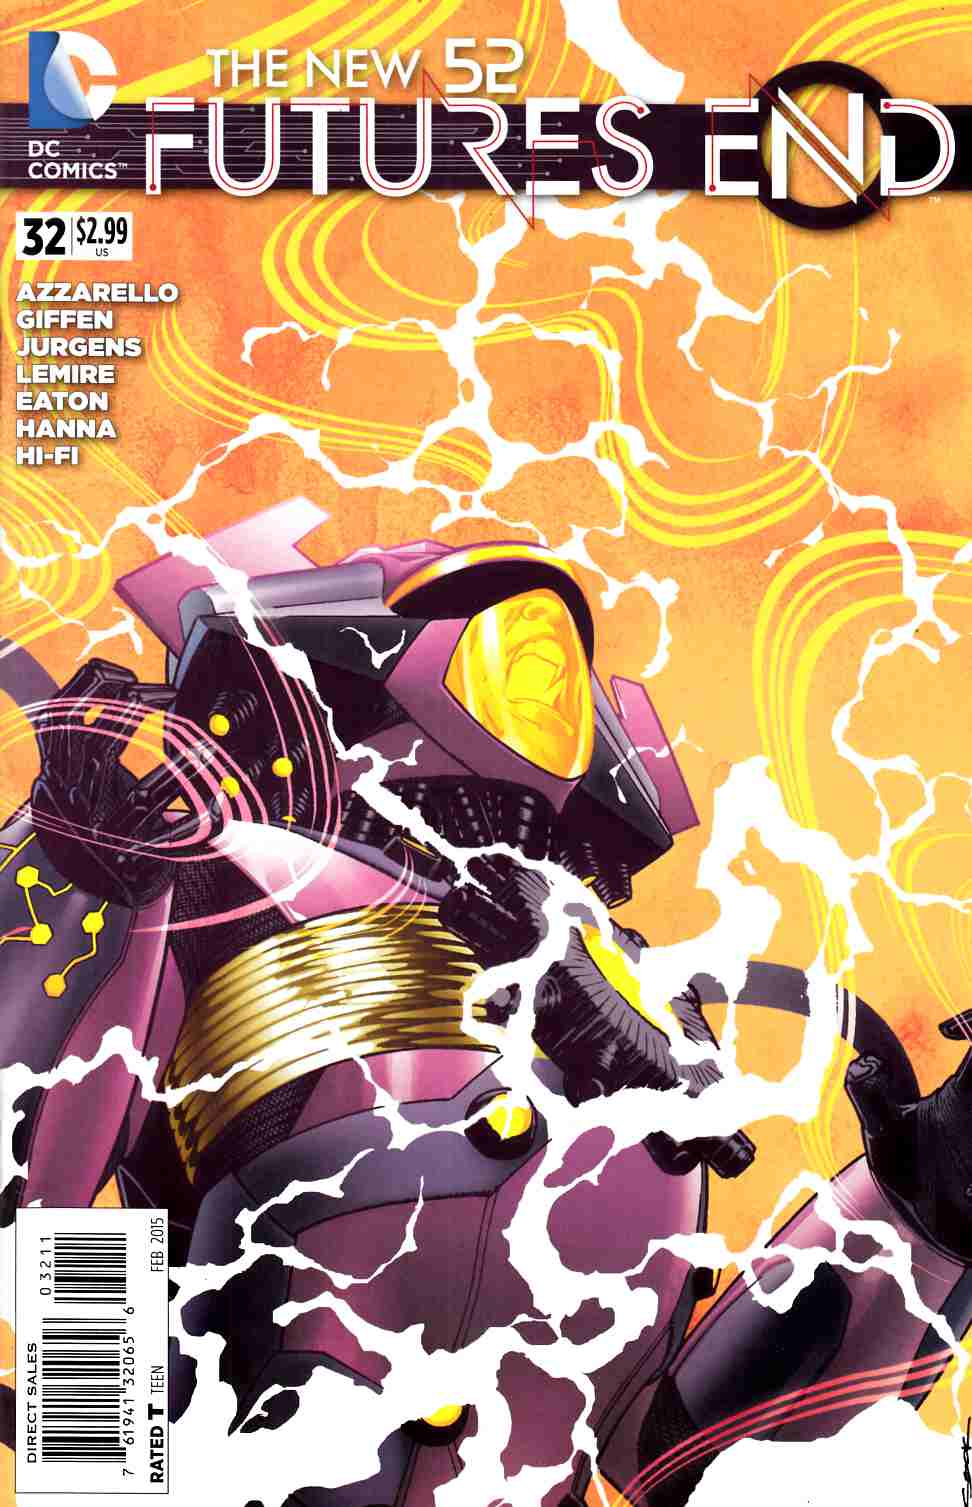 New 52 Futures End #32 (Weekly) [DC Comic] LARGE